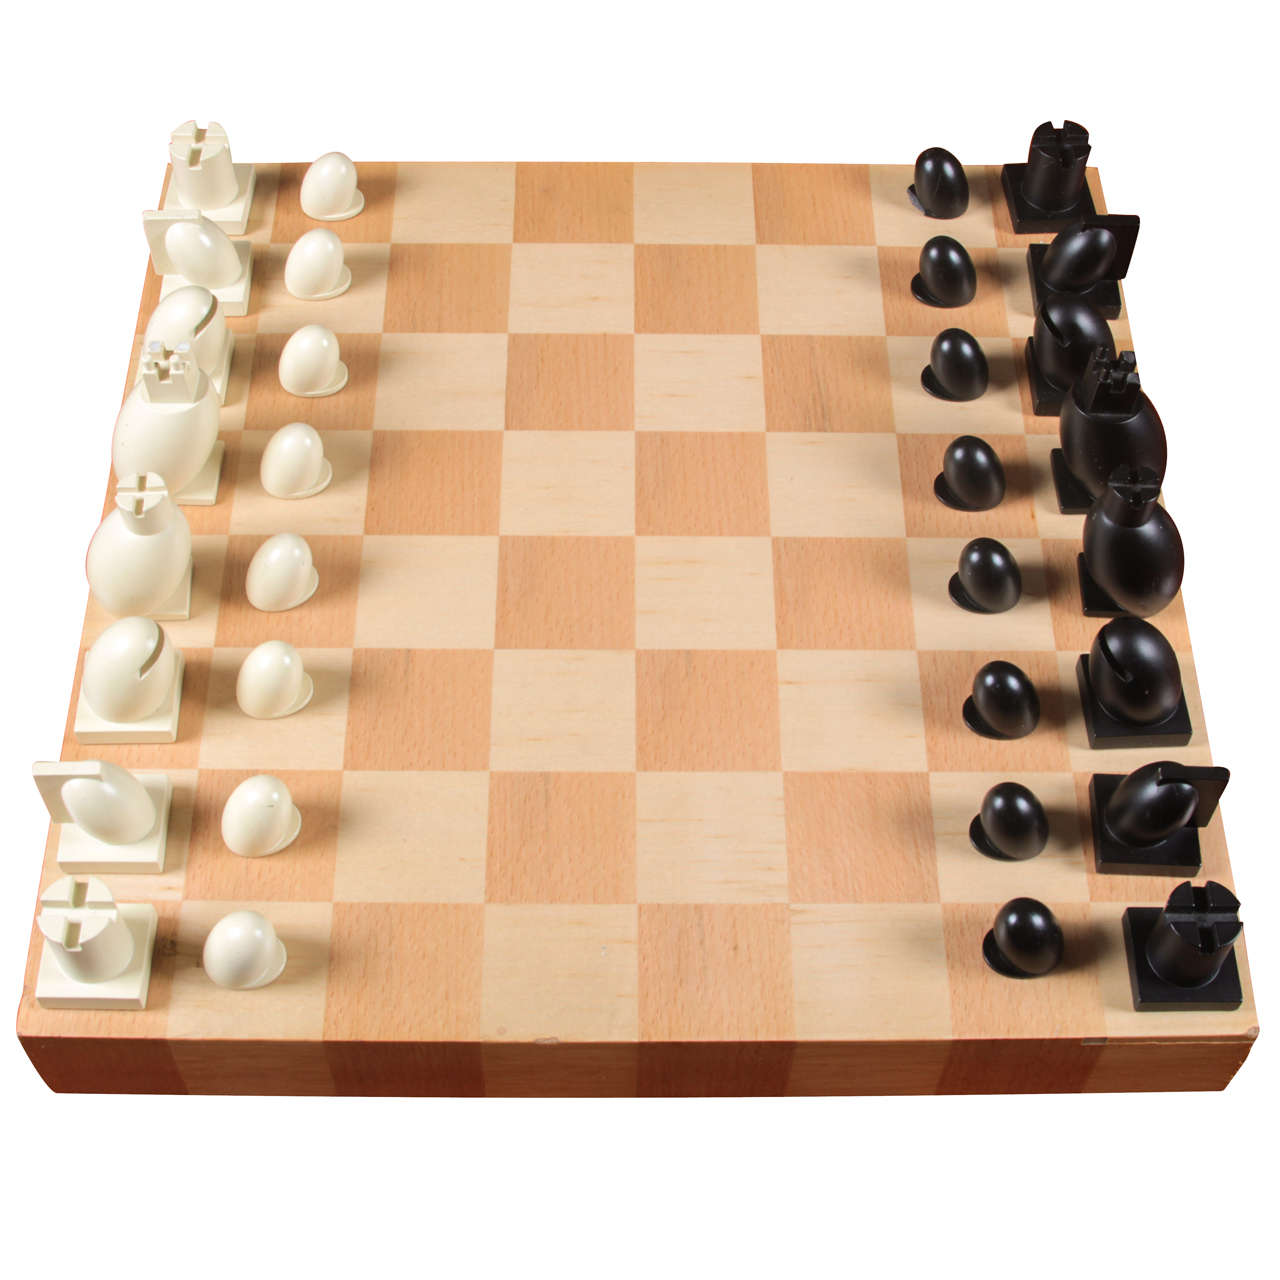 Antique Chess Boards 109 For Sale On 1stdibs